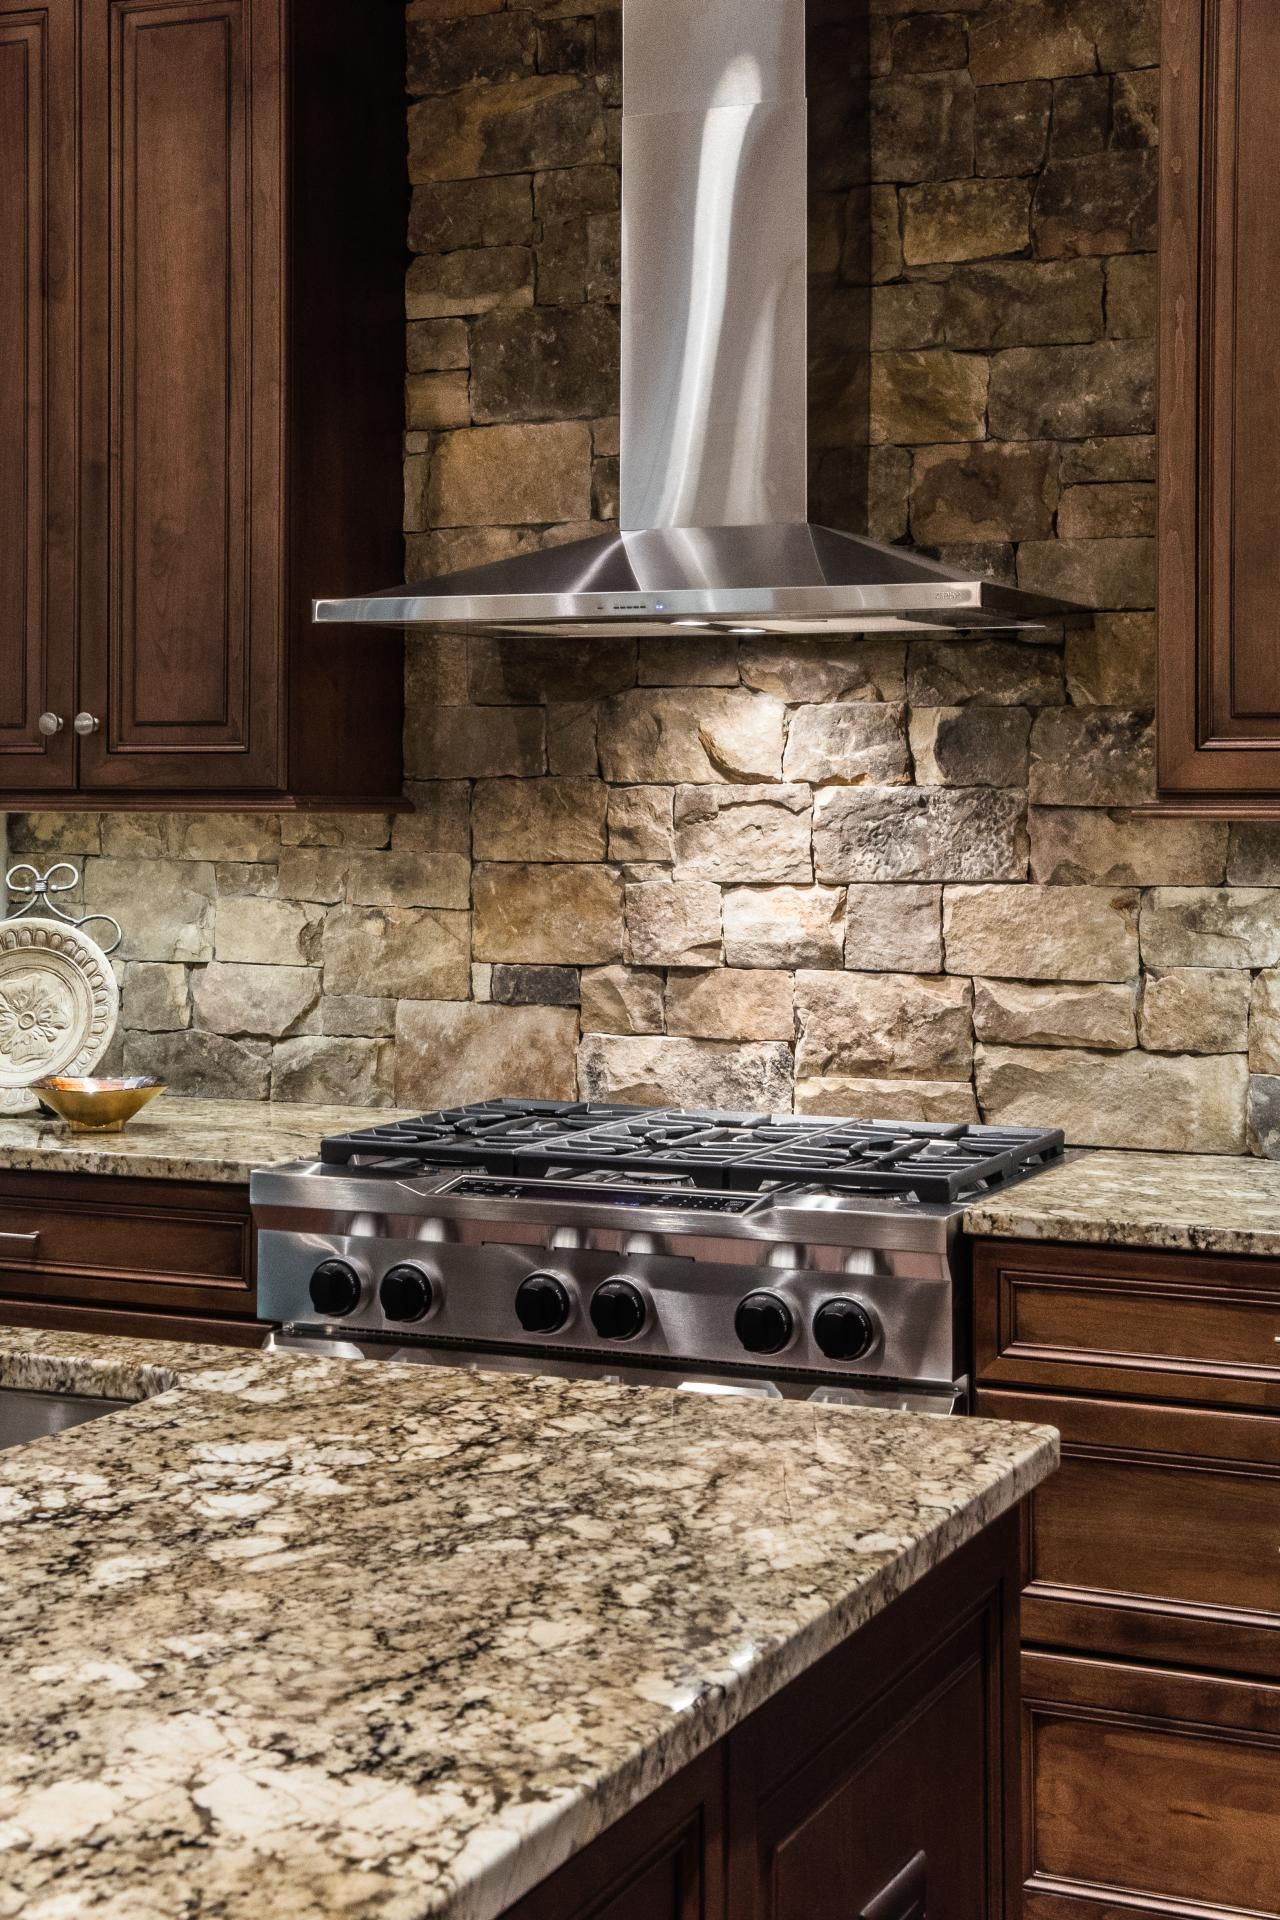 Gentil A Stainless Steel Range Hood Is A Sleek, Contemporary Counterpoint To The Stacked  Stone Backsplash.